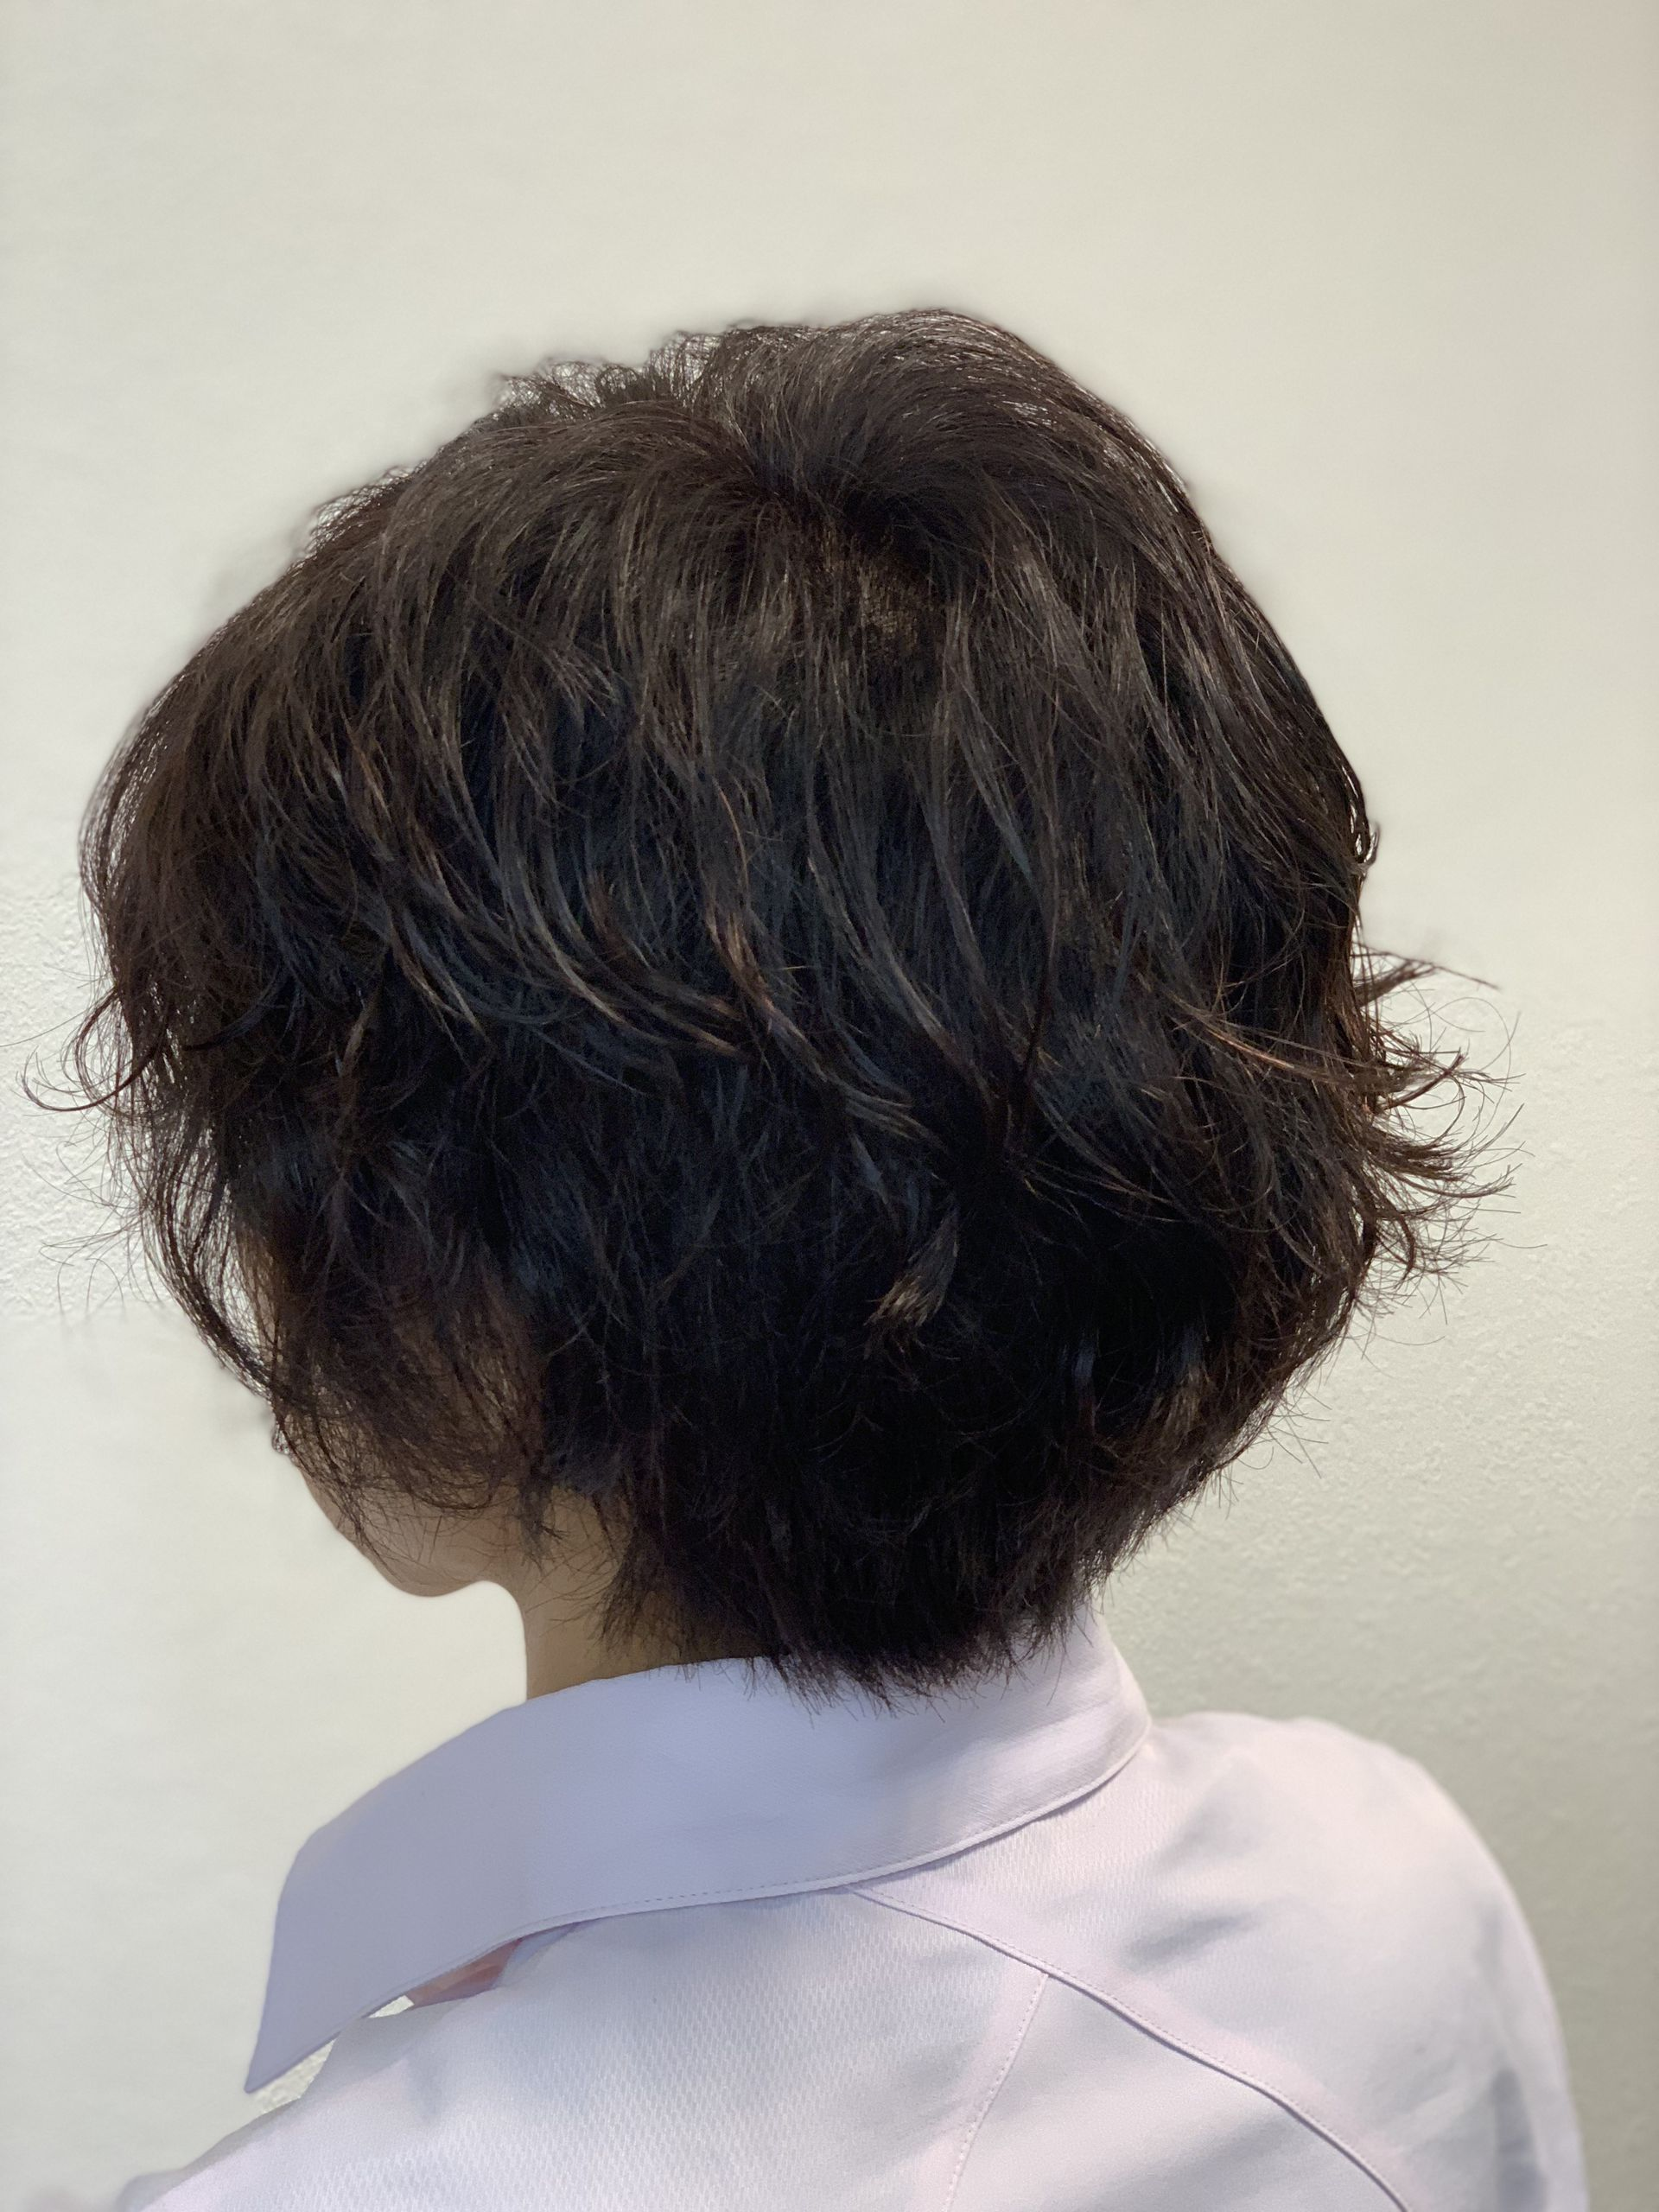 NEW💇‍♀️KP+のサムネイル画像